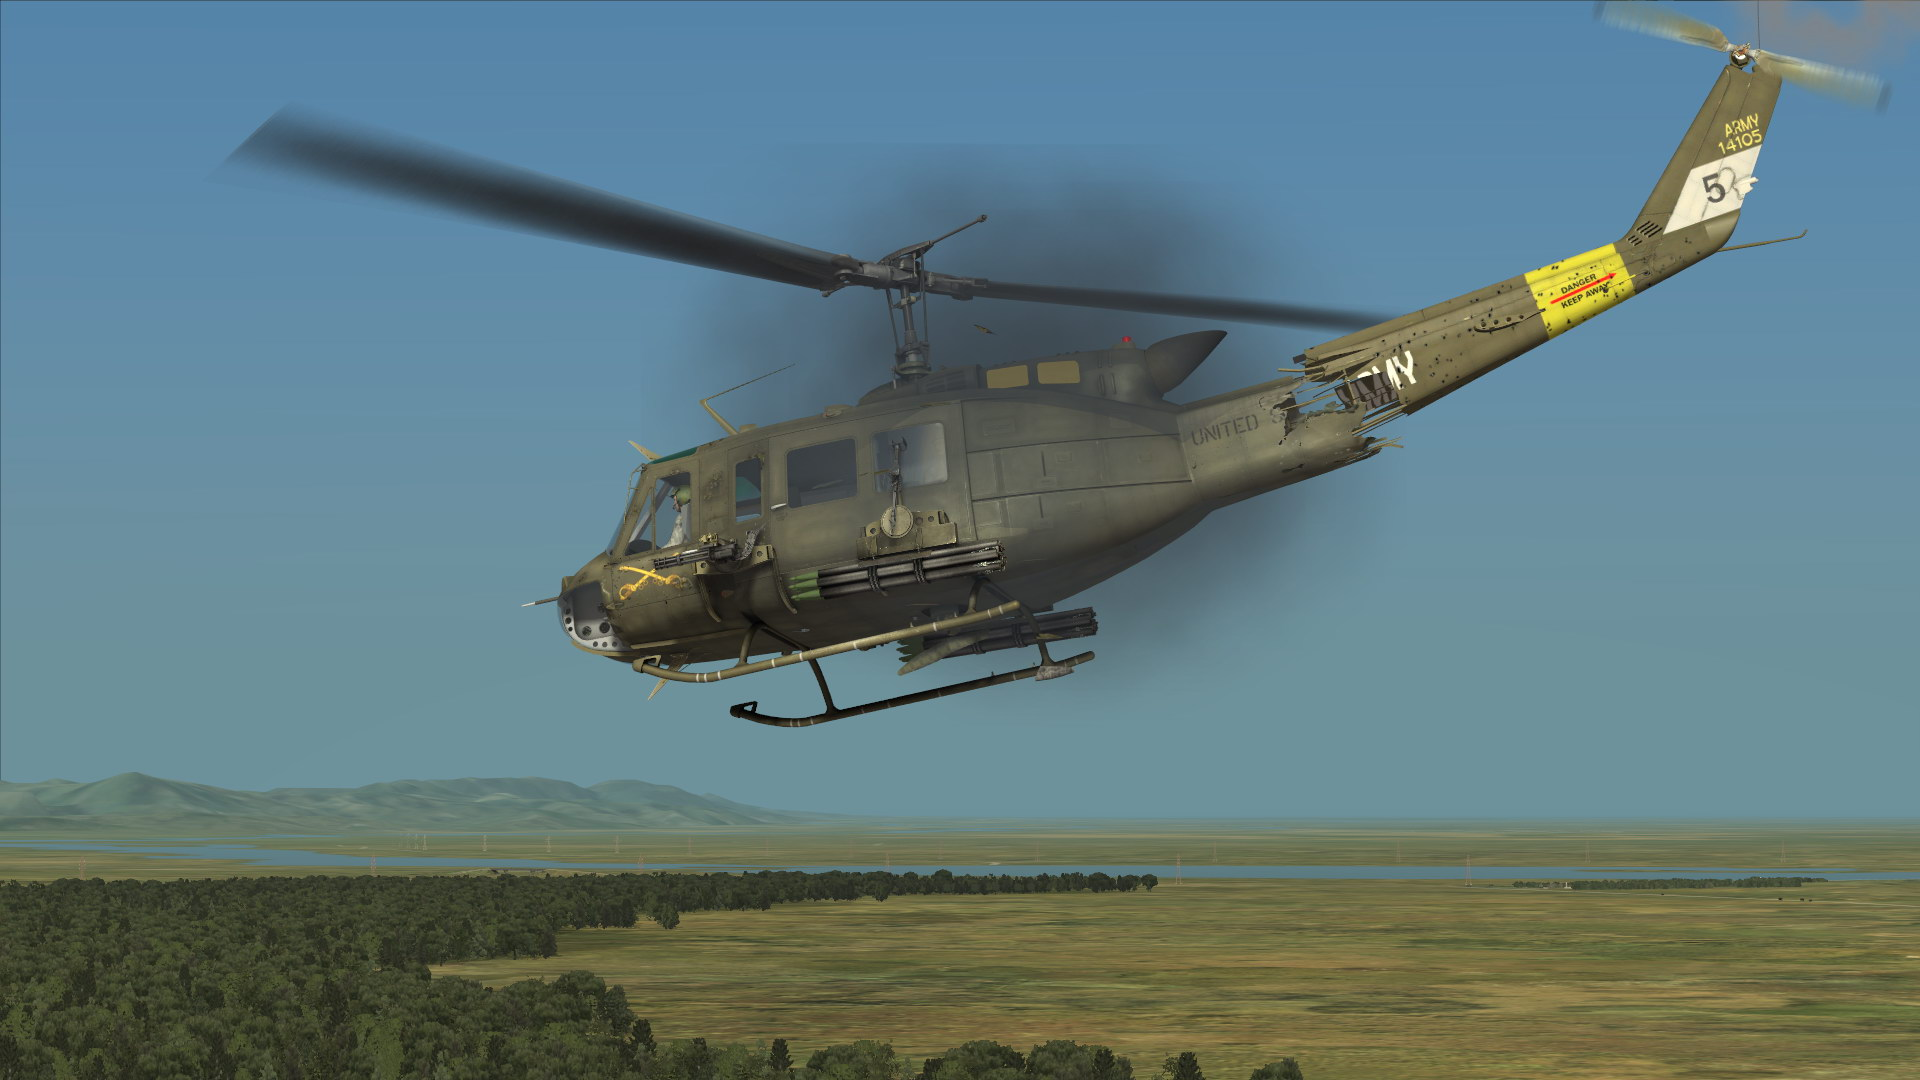 http://www.digitalcombatsimulator.com/images/products/huey/Huey-08.jpg